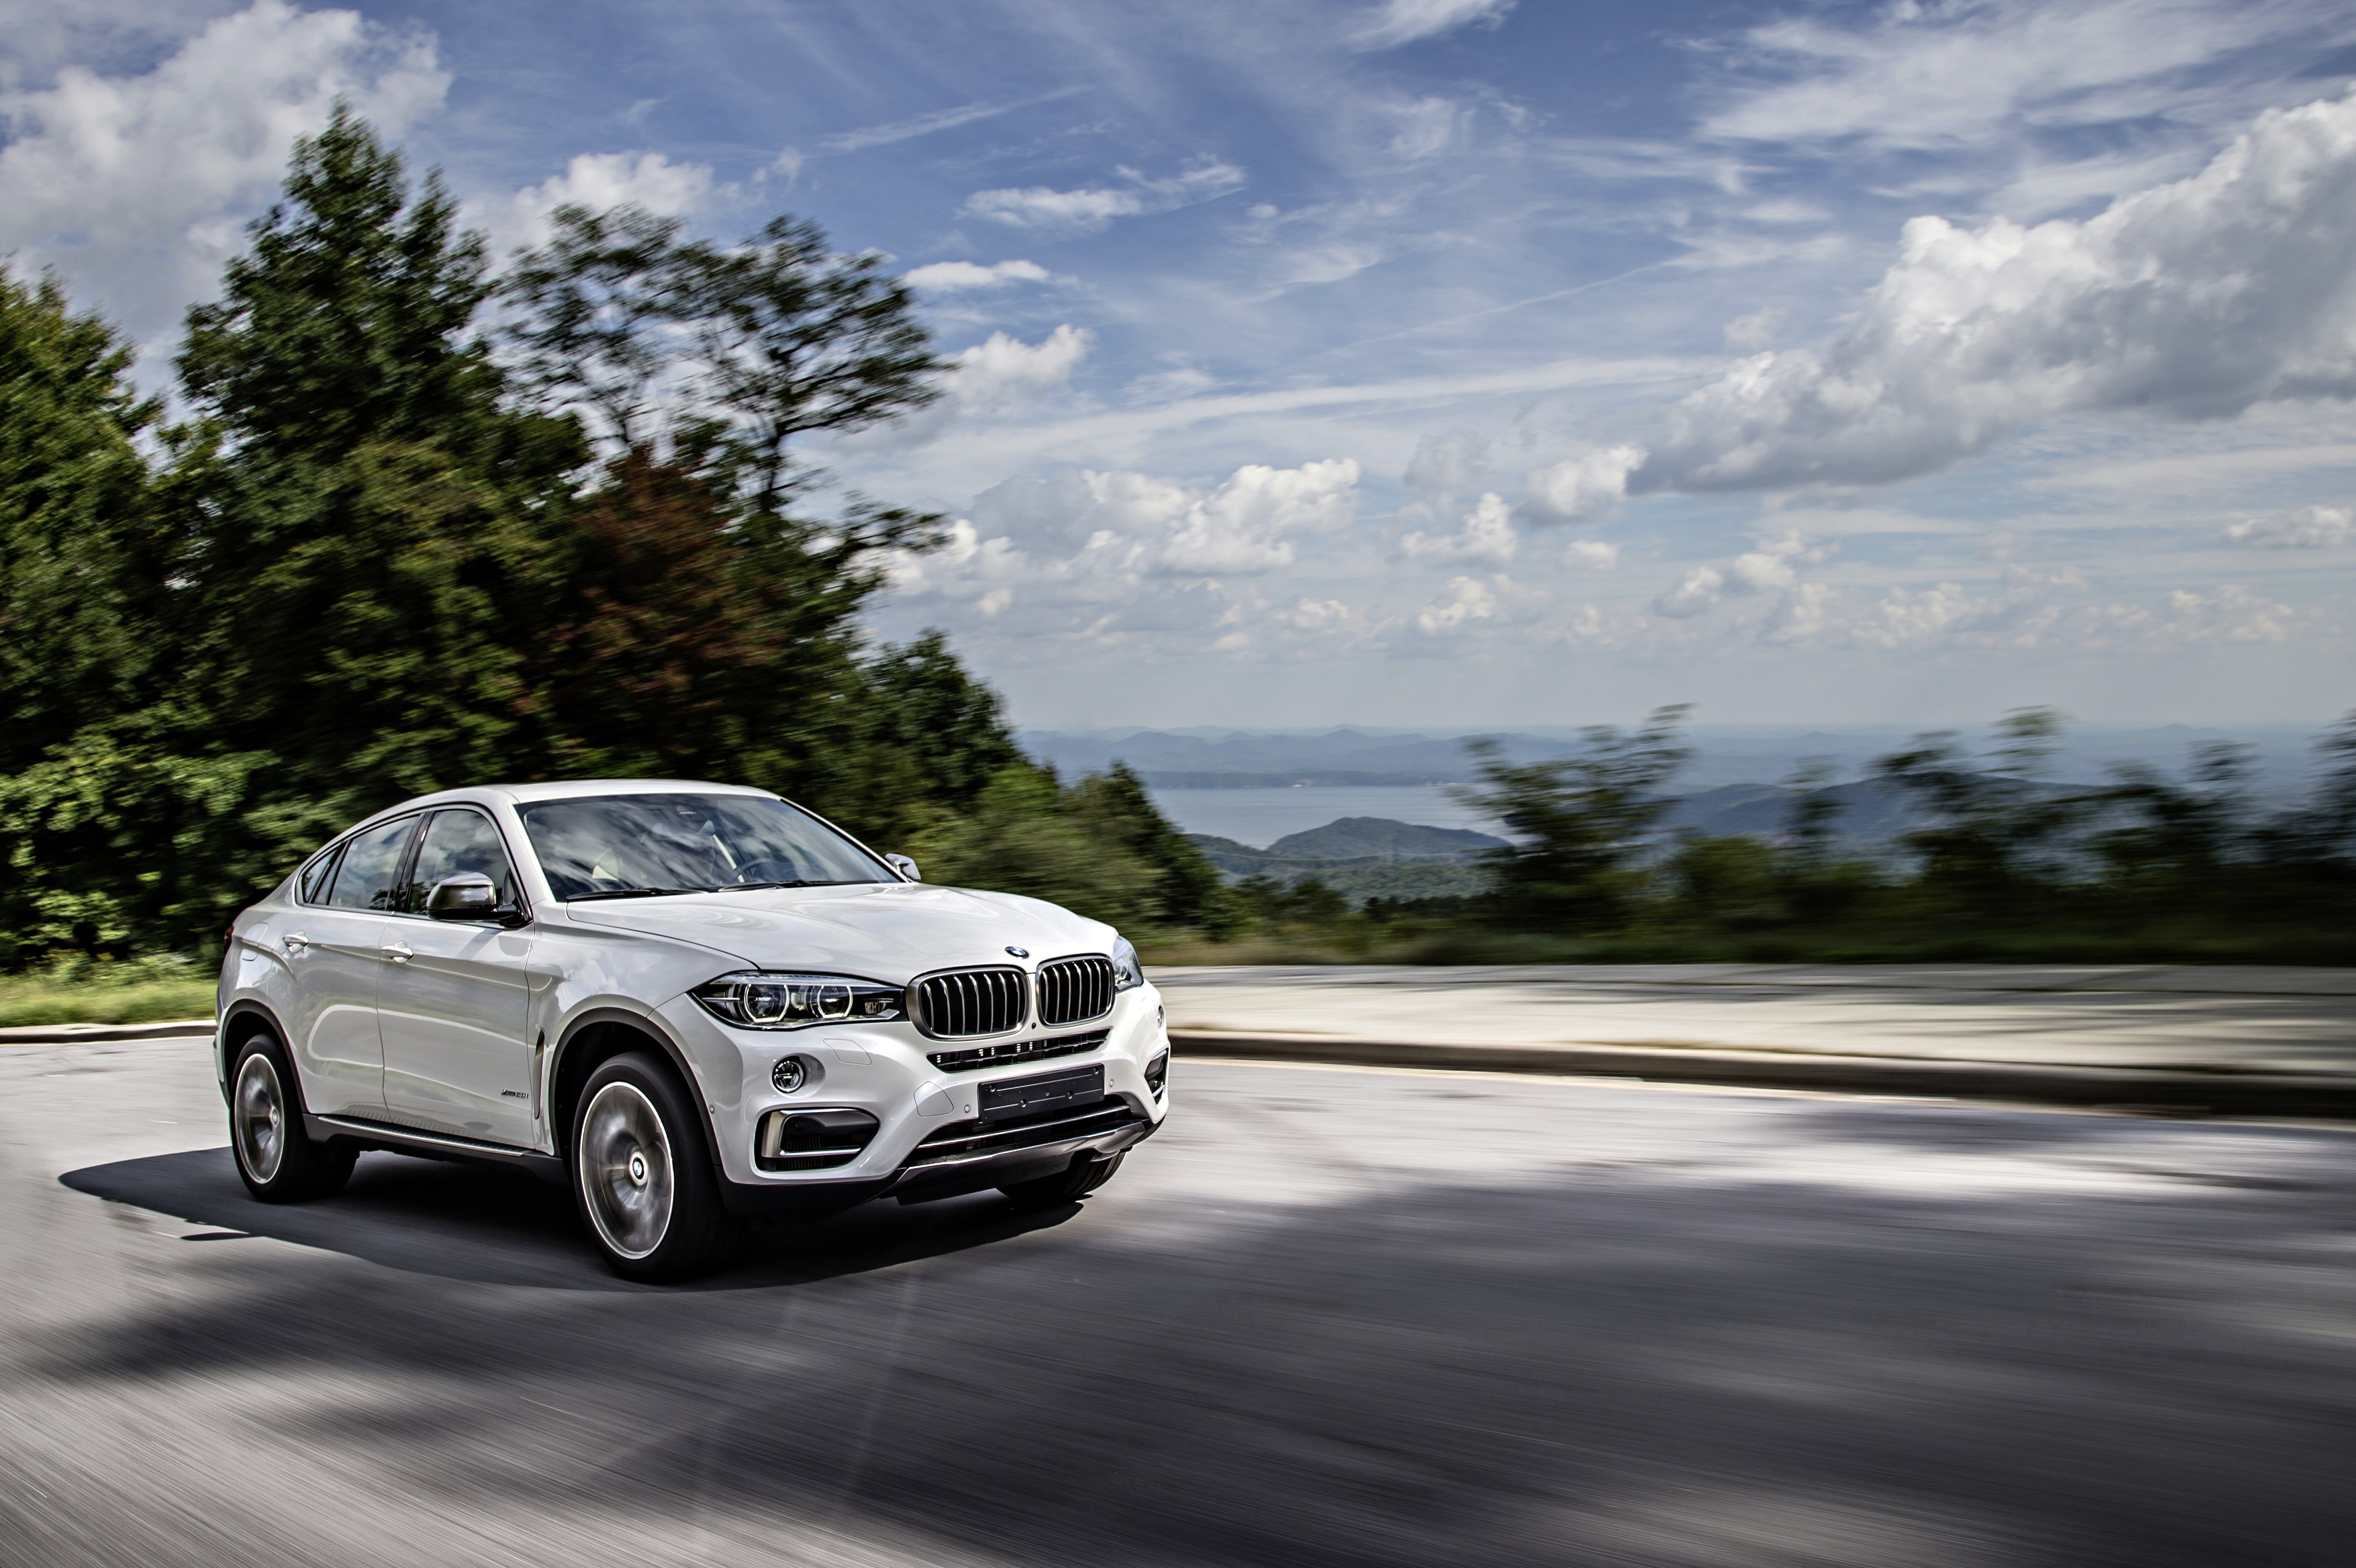 2015 Bmw X6 Wallpapers High Quality Iphone Wallpaper Bmw X6 4371x2909 Download Hd Wallpaper Wallpapertip